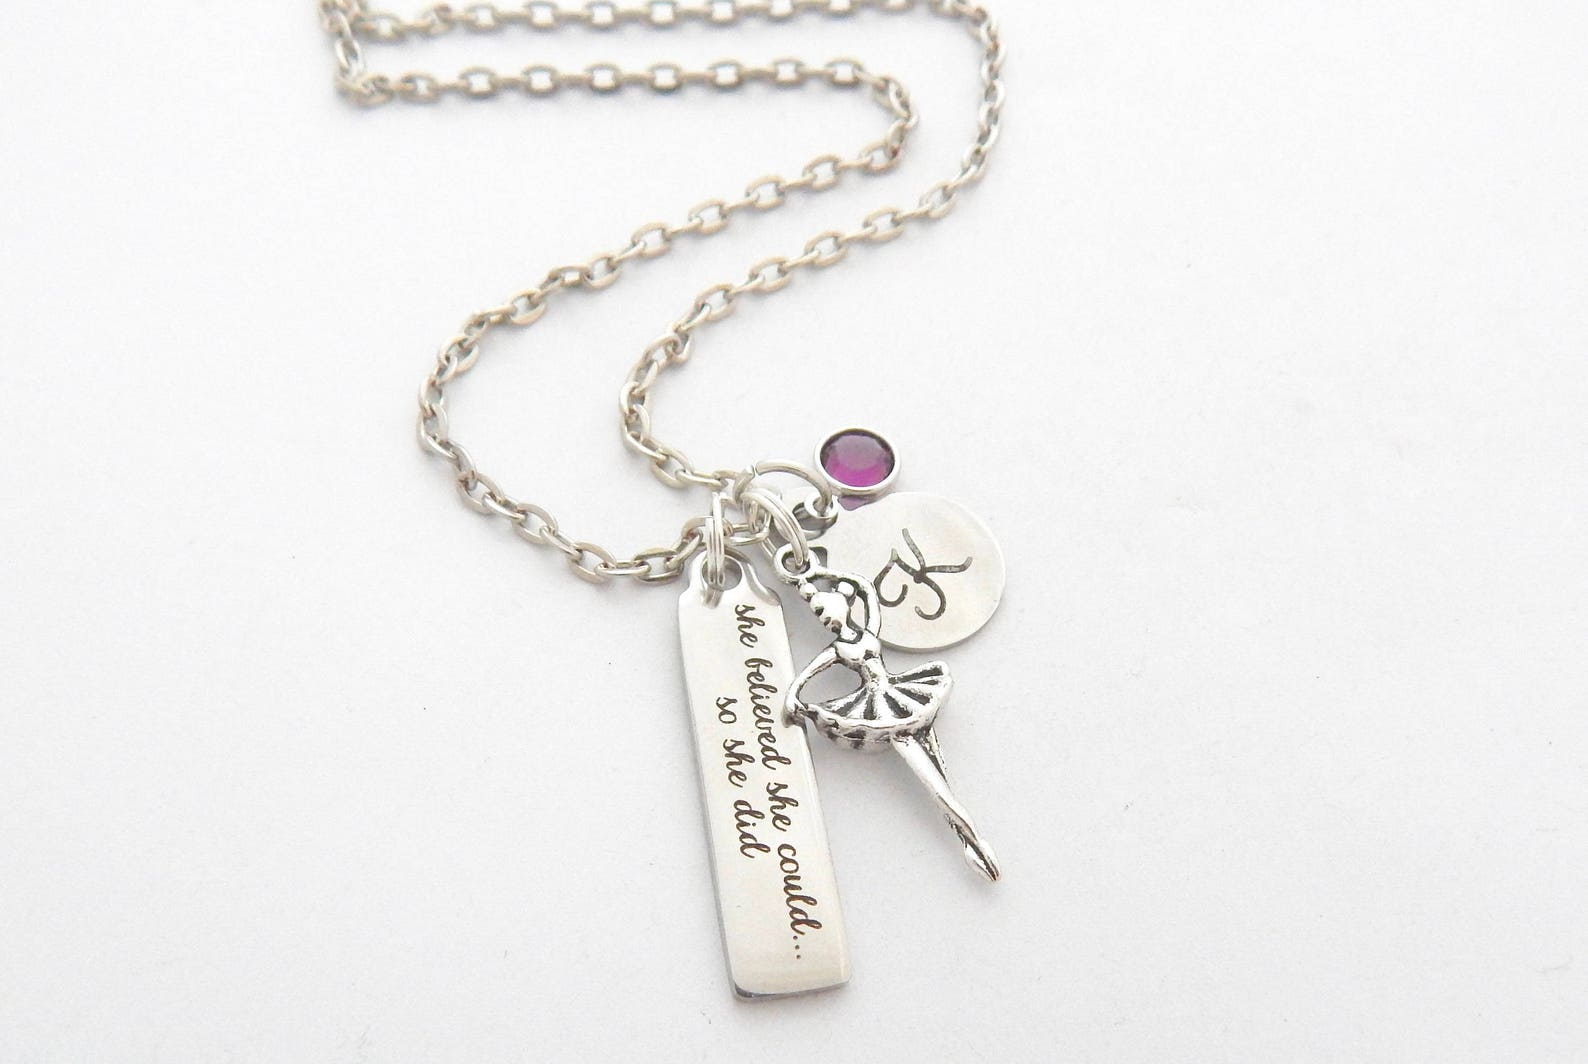 ballet necklace-ballerina dancerjewelry-dancer quote jewelry-dancer ballet gift ballerina jewelry-ballet recital gift-team gift